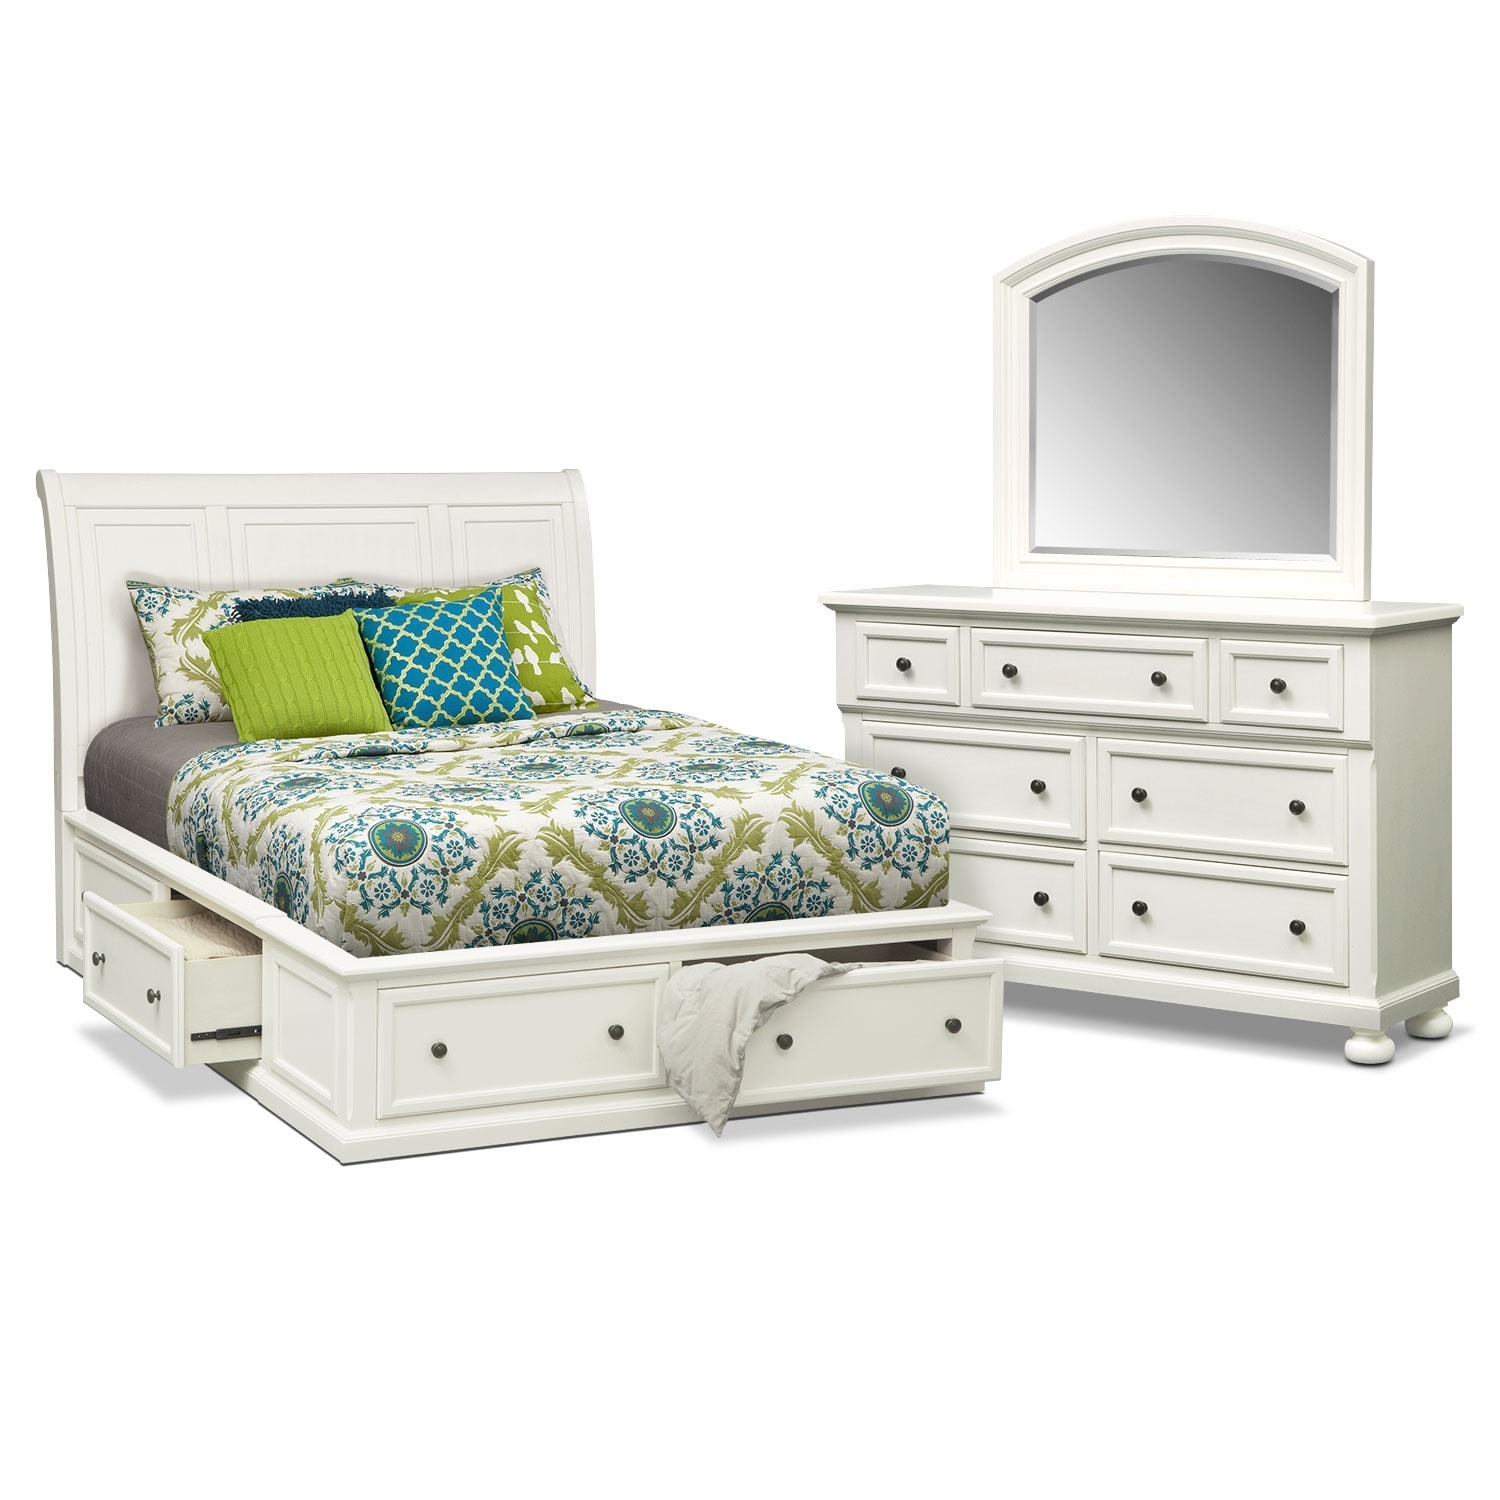 Hanover 5 piece queen storage bedroom set white value for White bedroom set with storage